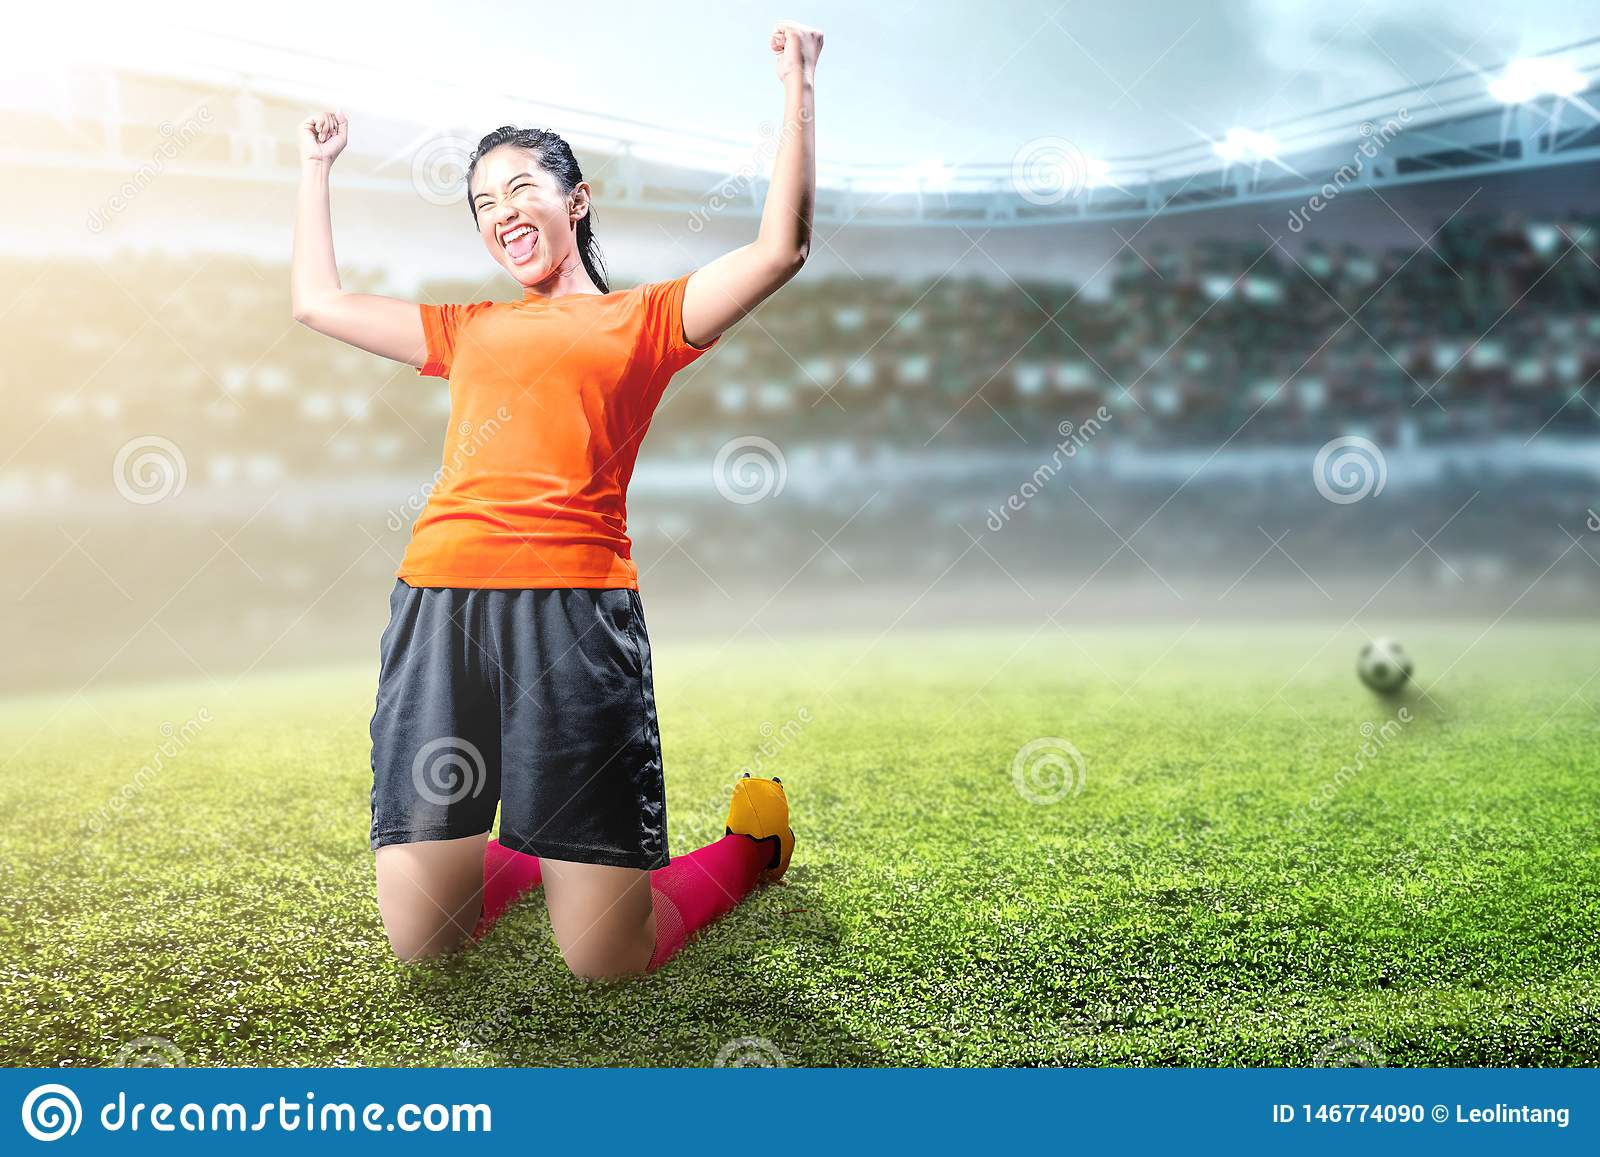 Asian football player woman celebrate her goal with raised arms and kneeling